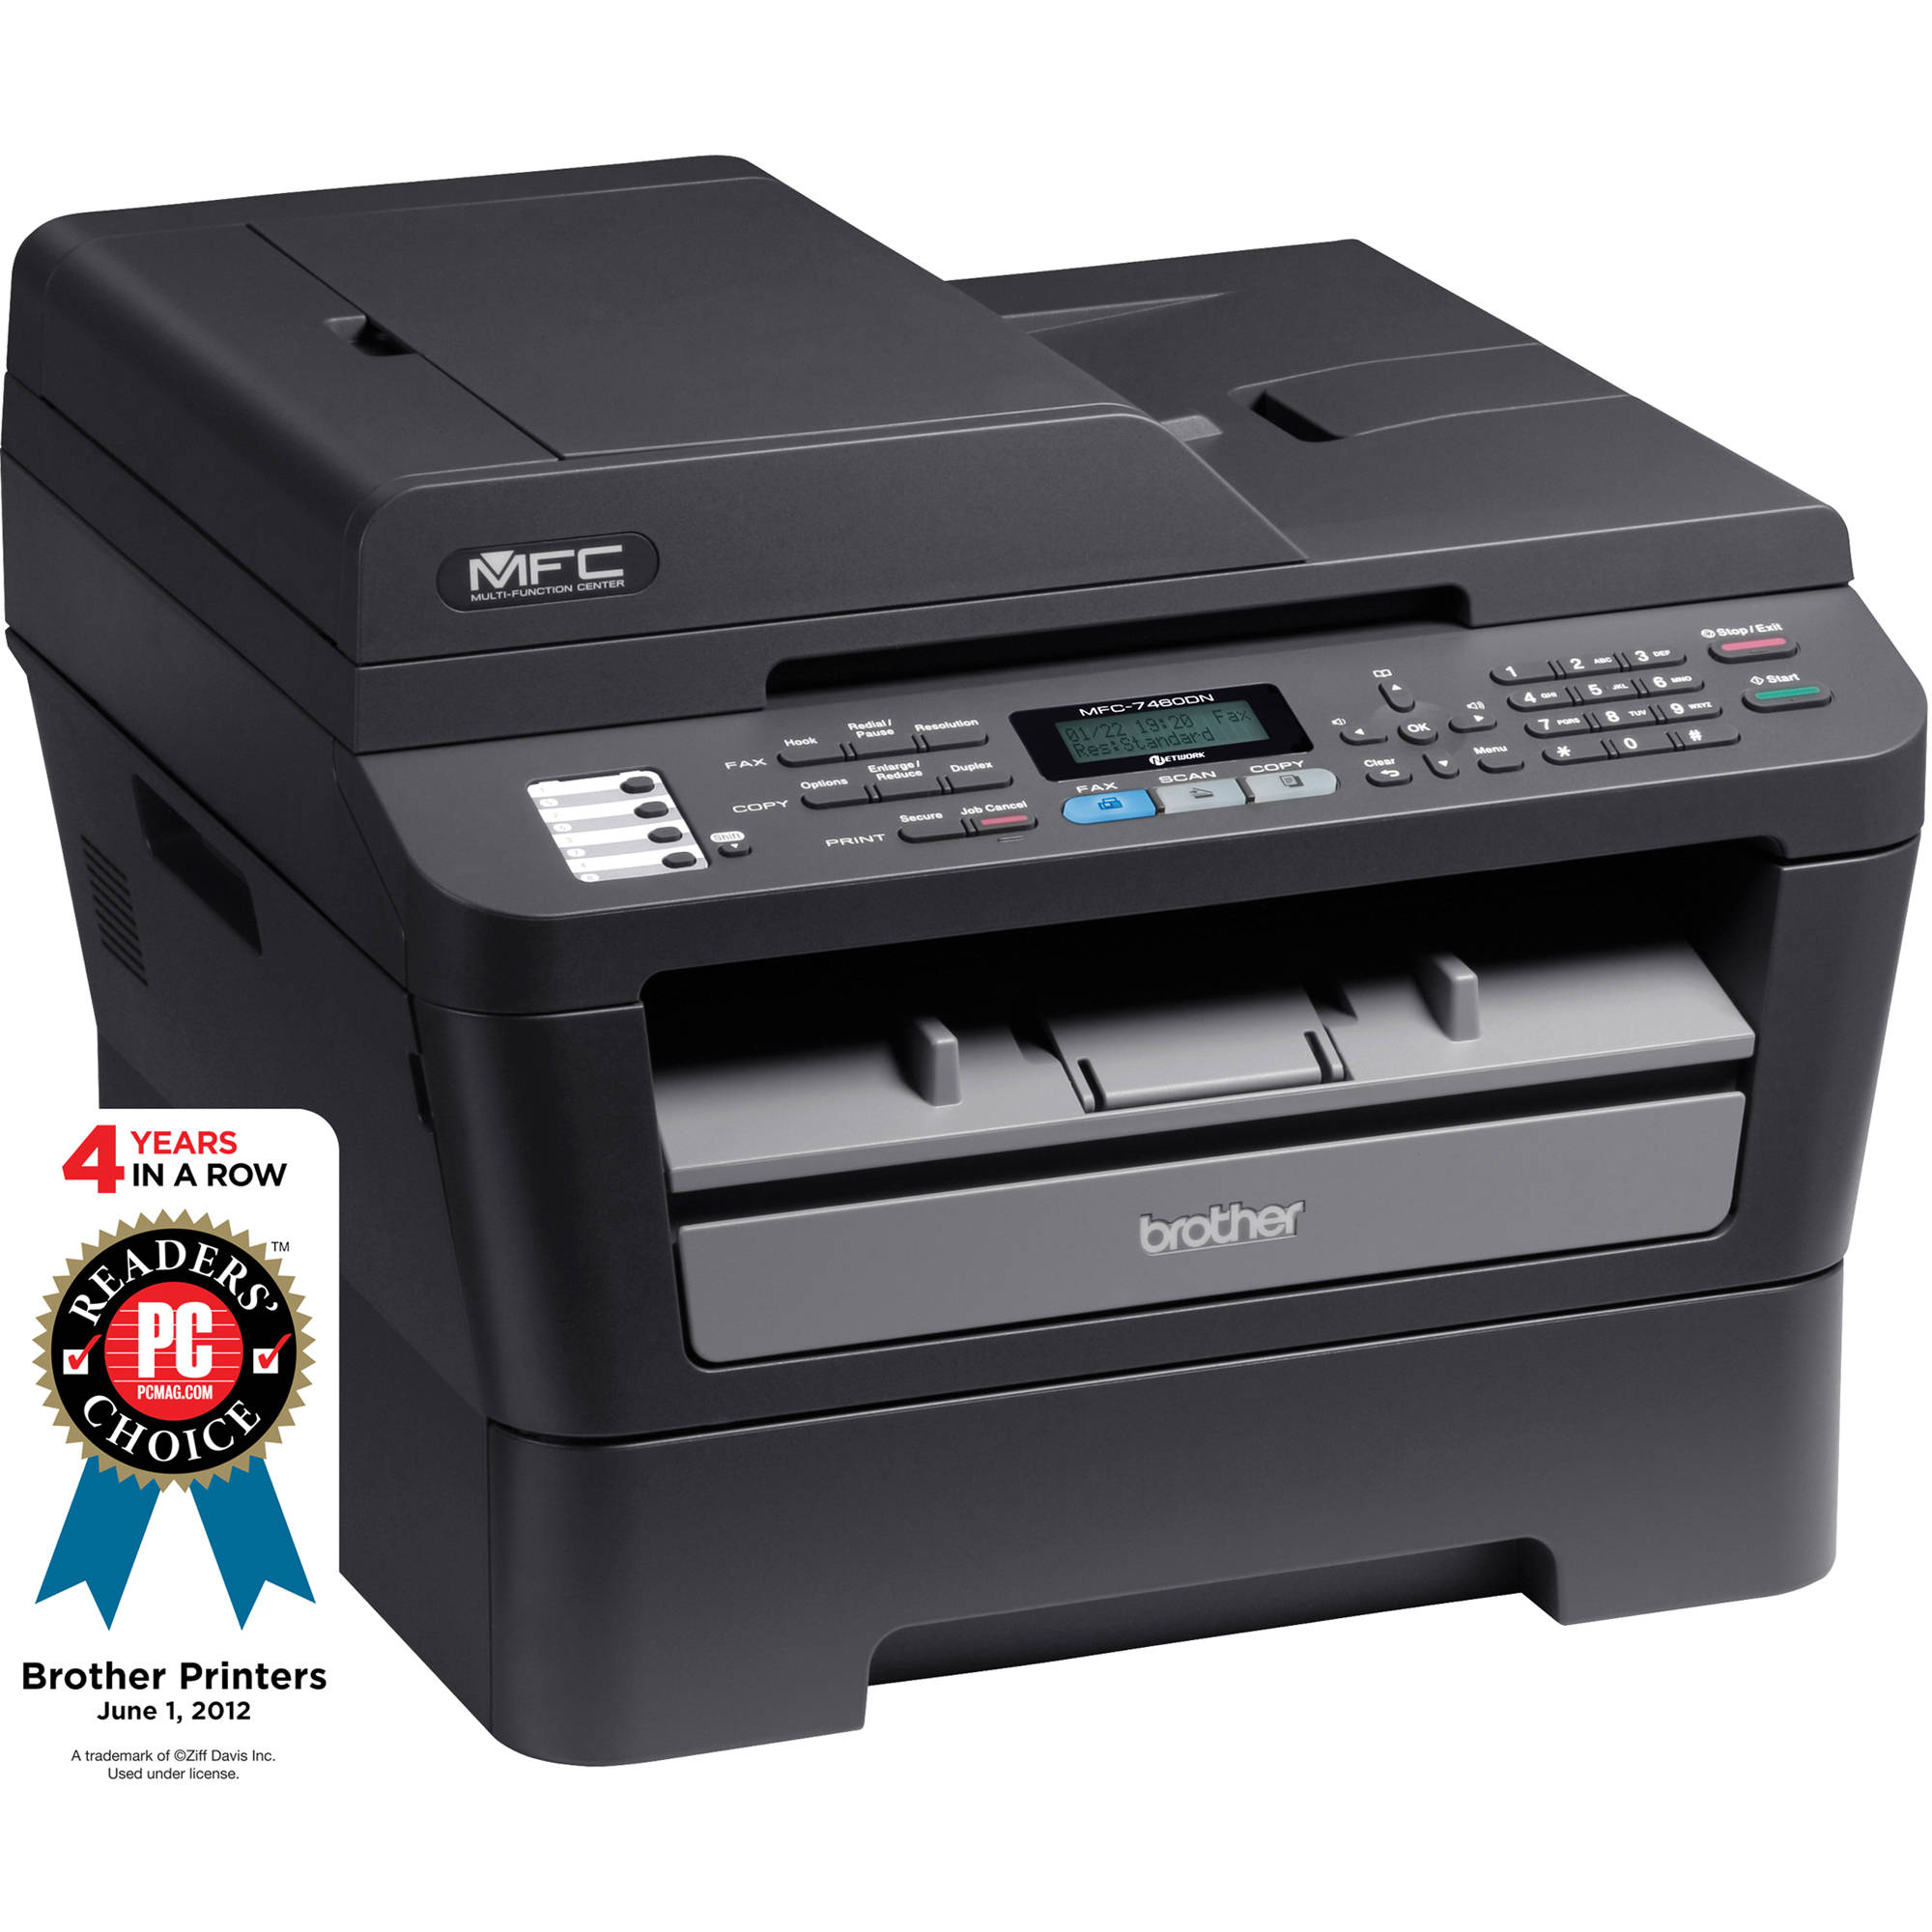 Brother MFC-7460DN Network Monochrome All-in-One MFC-7460DN B\u0026H